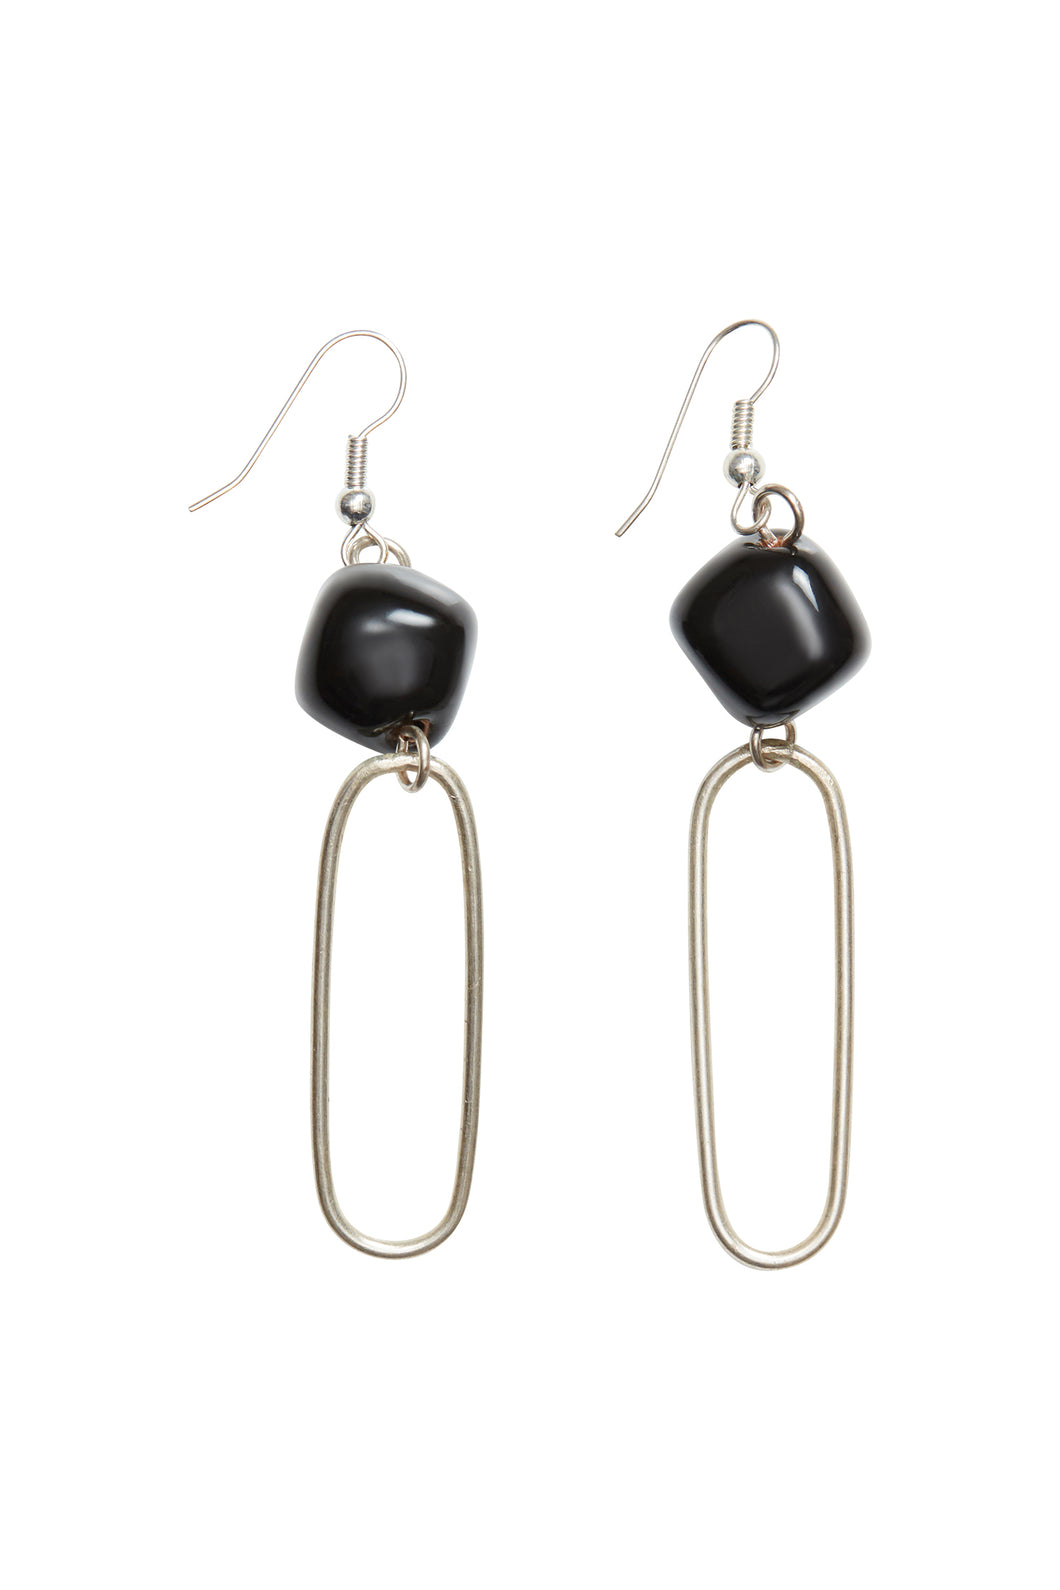 Bead and Oval Earrings - Silver